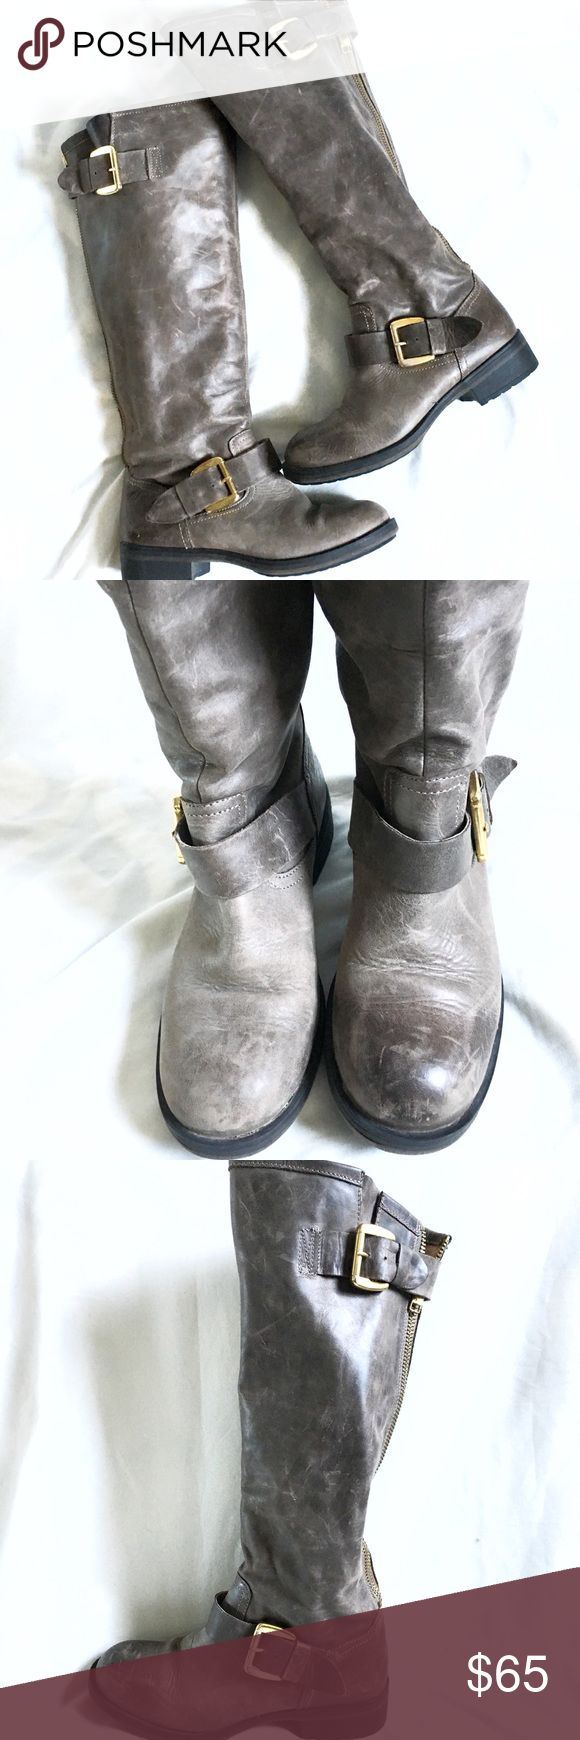 Steve Madden Moto Boot Grey leather boots? Yes please! A must have item in the closet. Grey pairs well with almost any color and gives another option other than black. These boots have a bit of a rugged edge look while still keeping it classy 👌🏽.  ⭐️genuine leather  ⭐️functional heavy duty back zipper ⭐️great preloved condition. Several scratches in the leather. These can be buffed out with a nice leather conditioner, or left alone for a more distressed look. Which is how we would prefer…